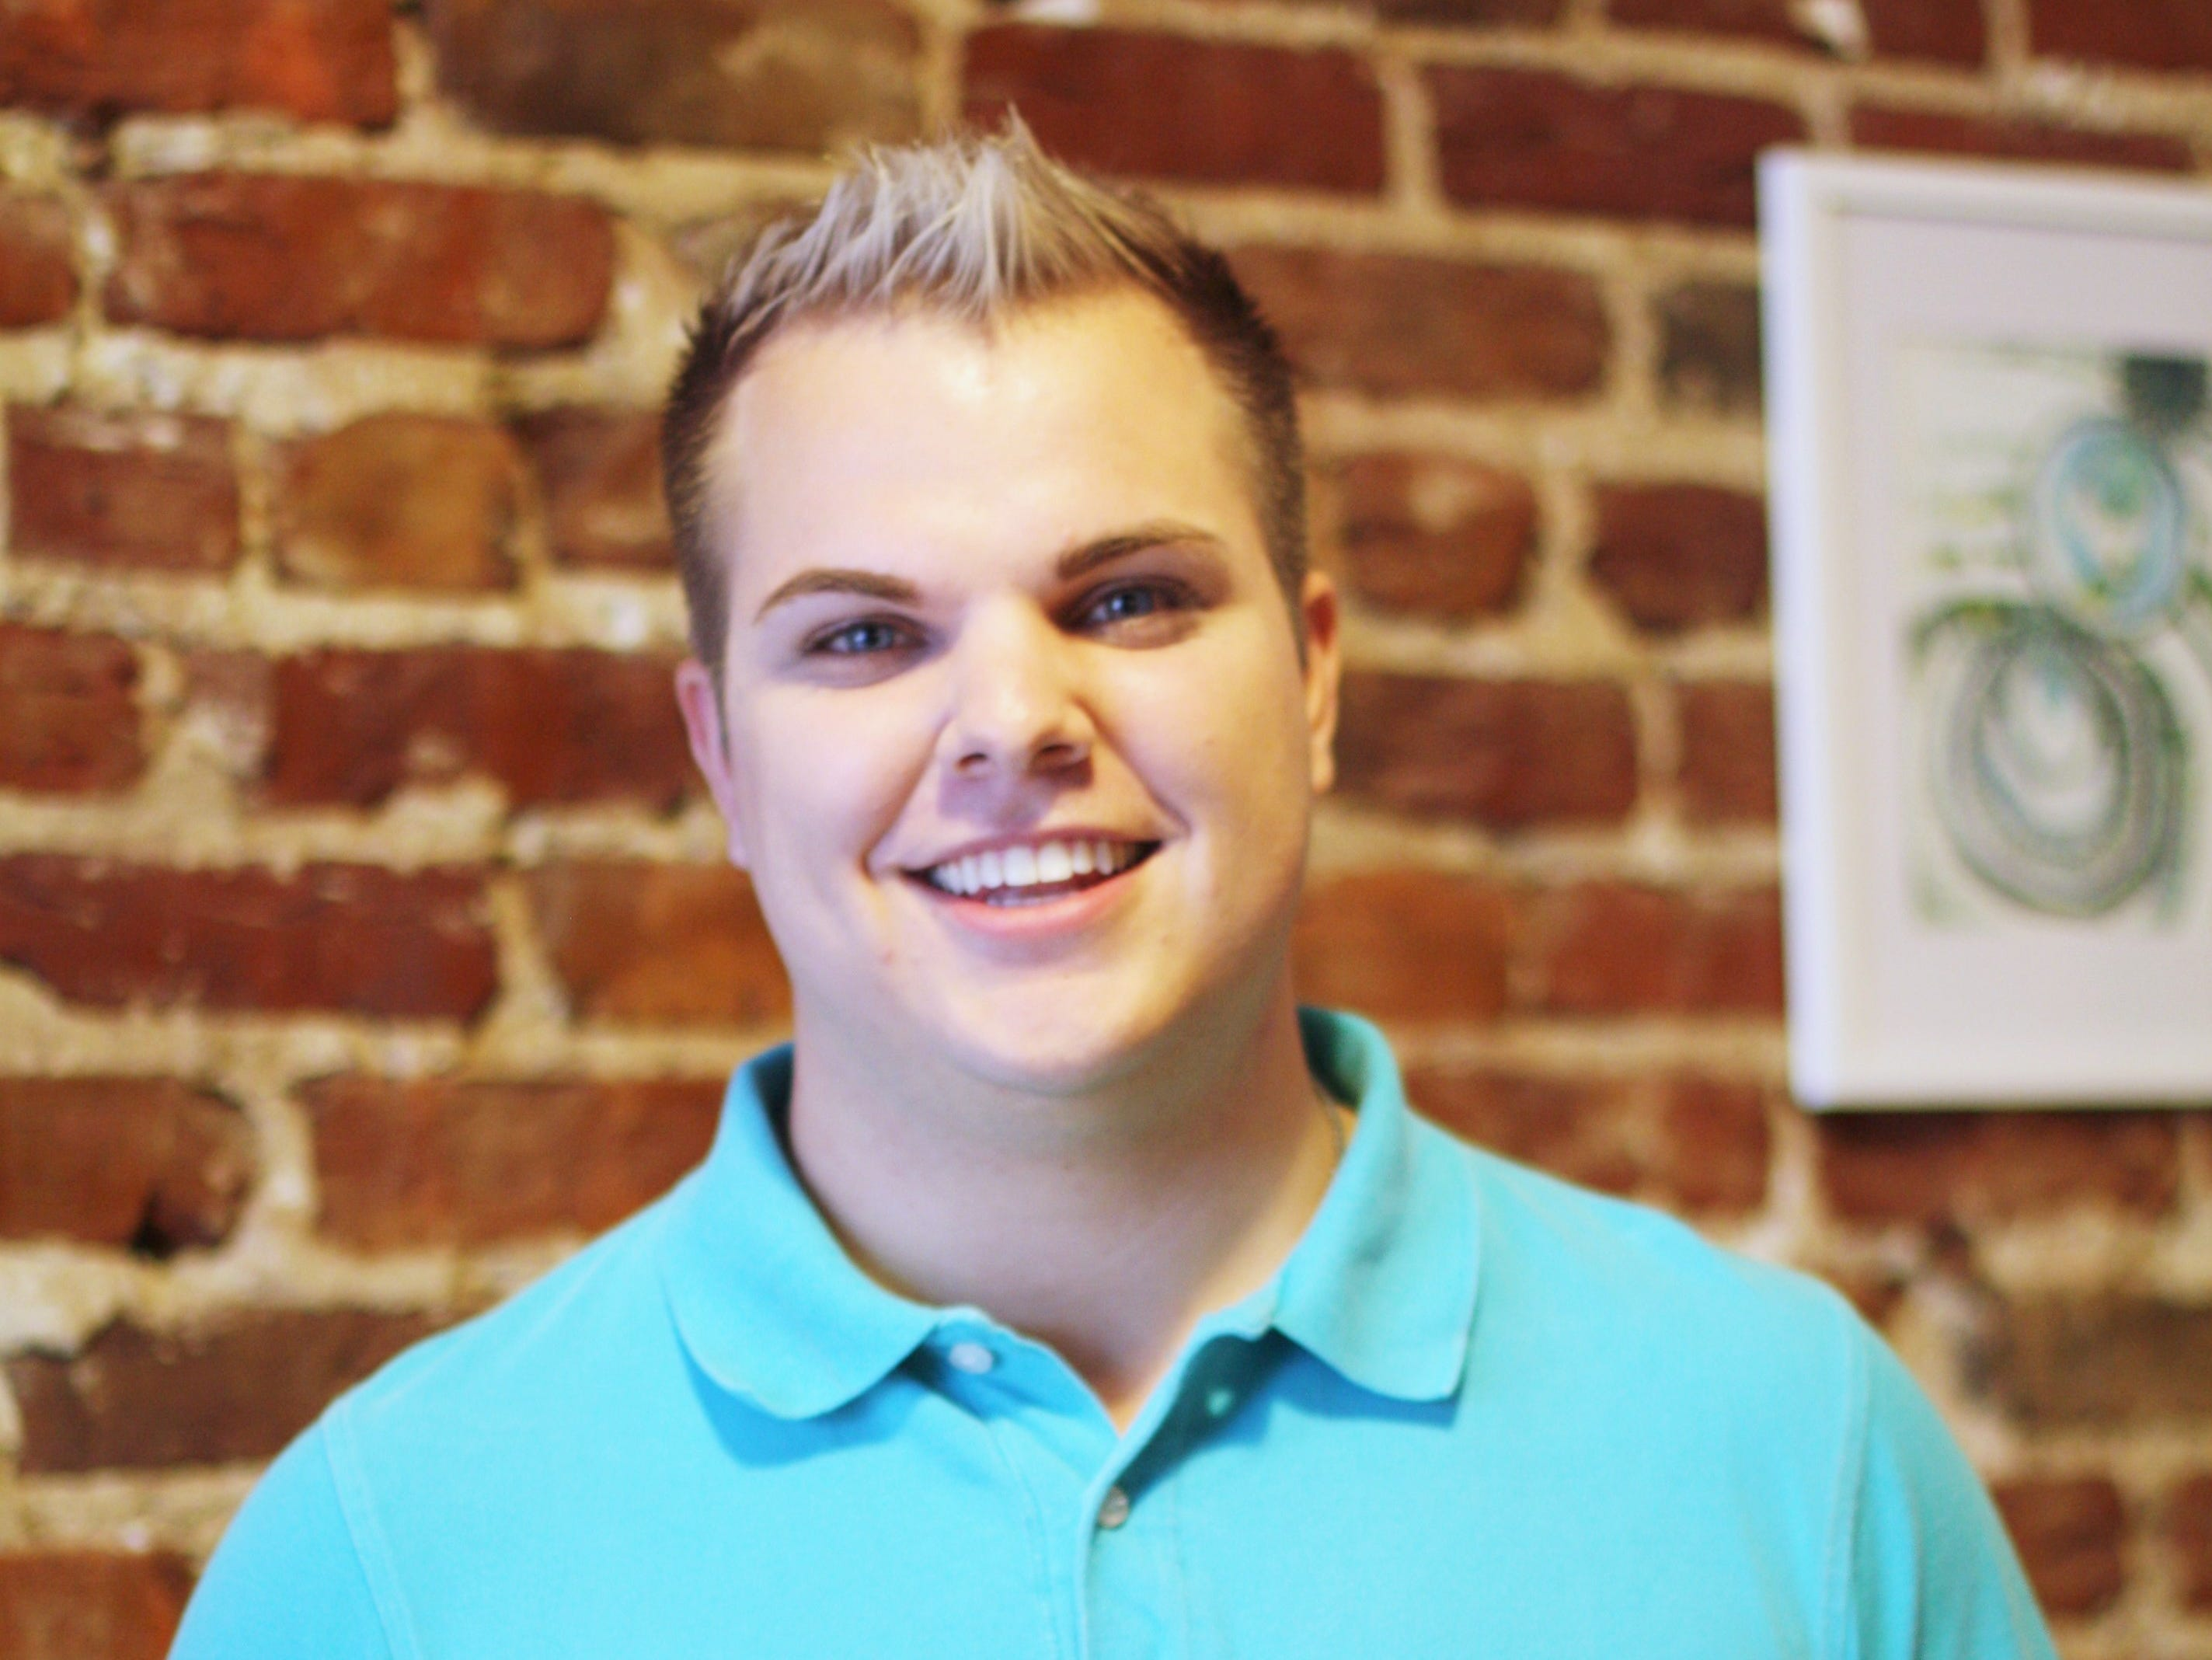 Josh Ray started out making cotton candy-scented bath bombs for friends before launching his home-based business, The Bath Lab. Ray currently sells his products at Jacks of Knoxville.